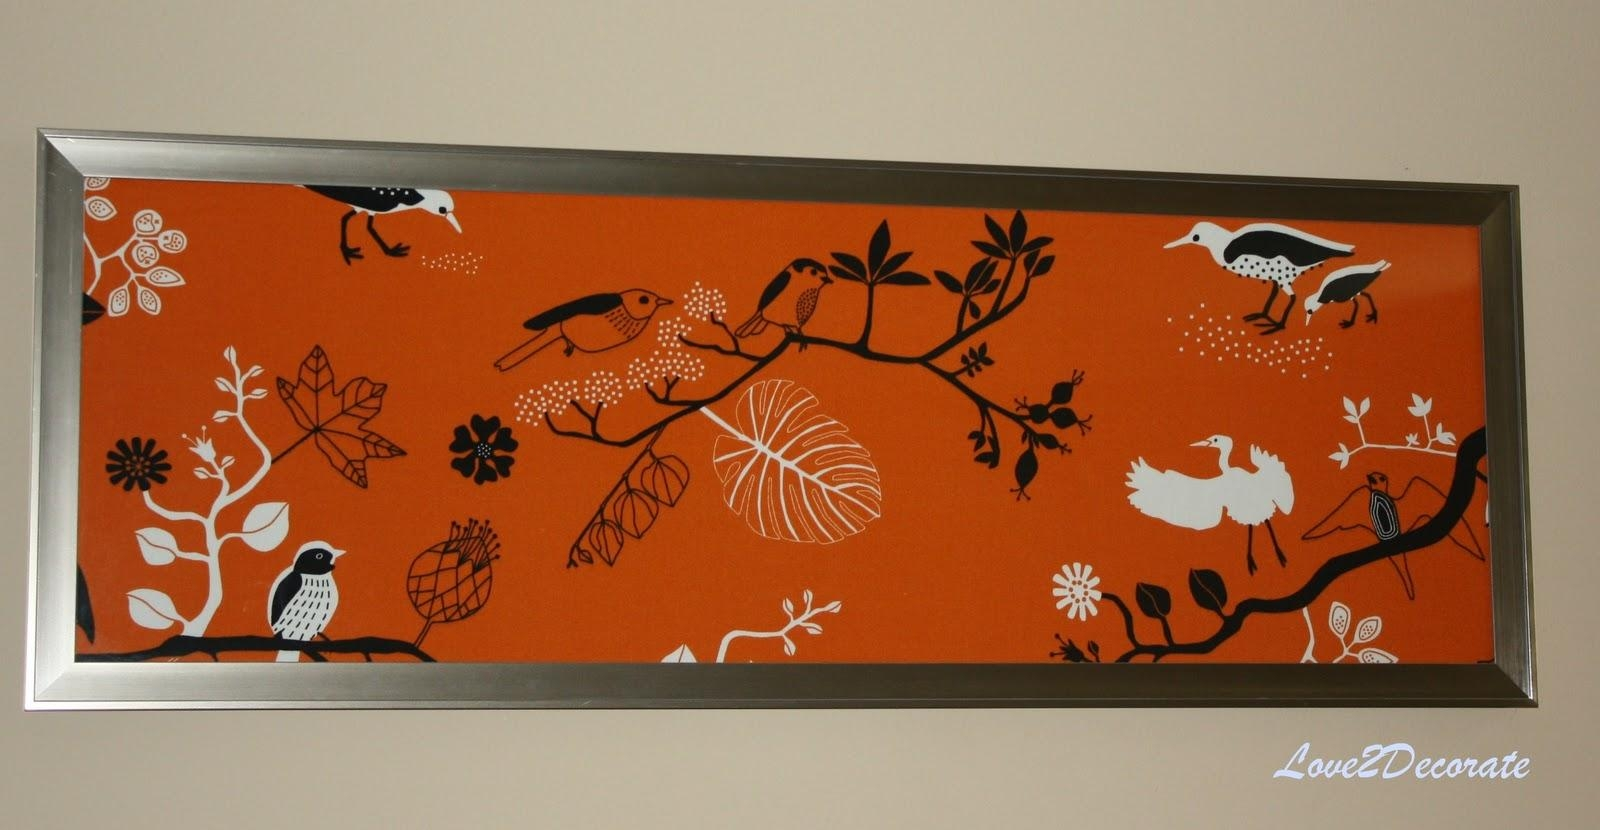 Love 2 Decorate: Frame + Fabric = Wall Art Throughout Fabric Wall Art (Image 13 of 20)